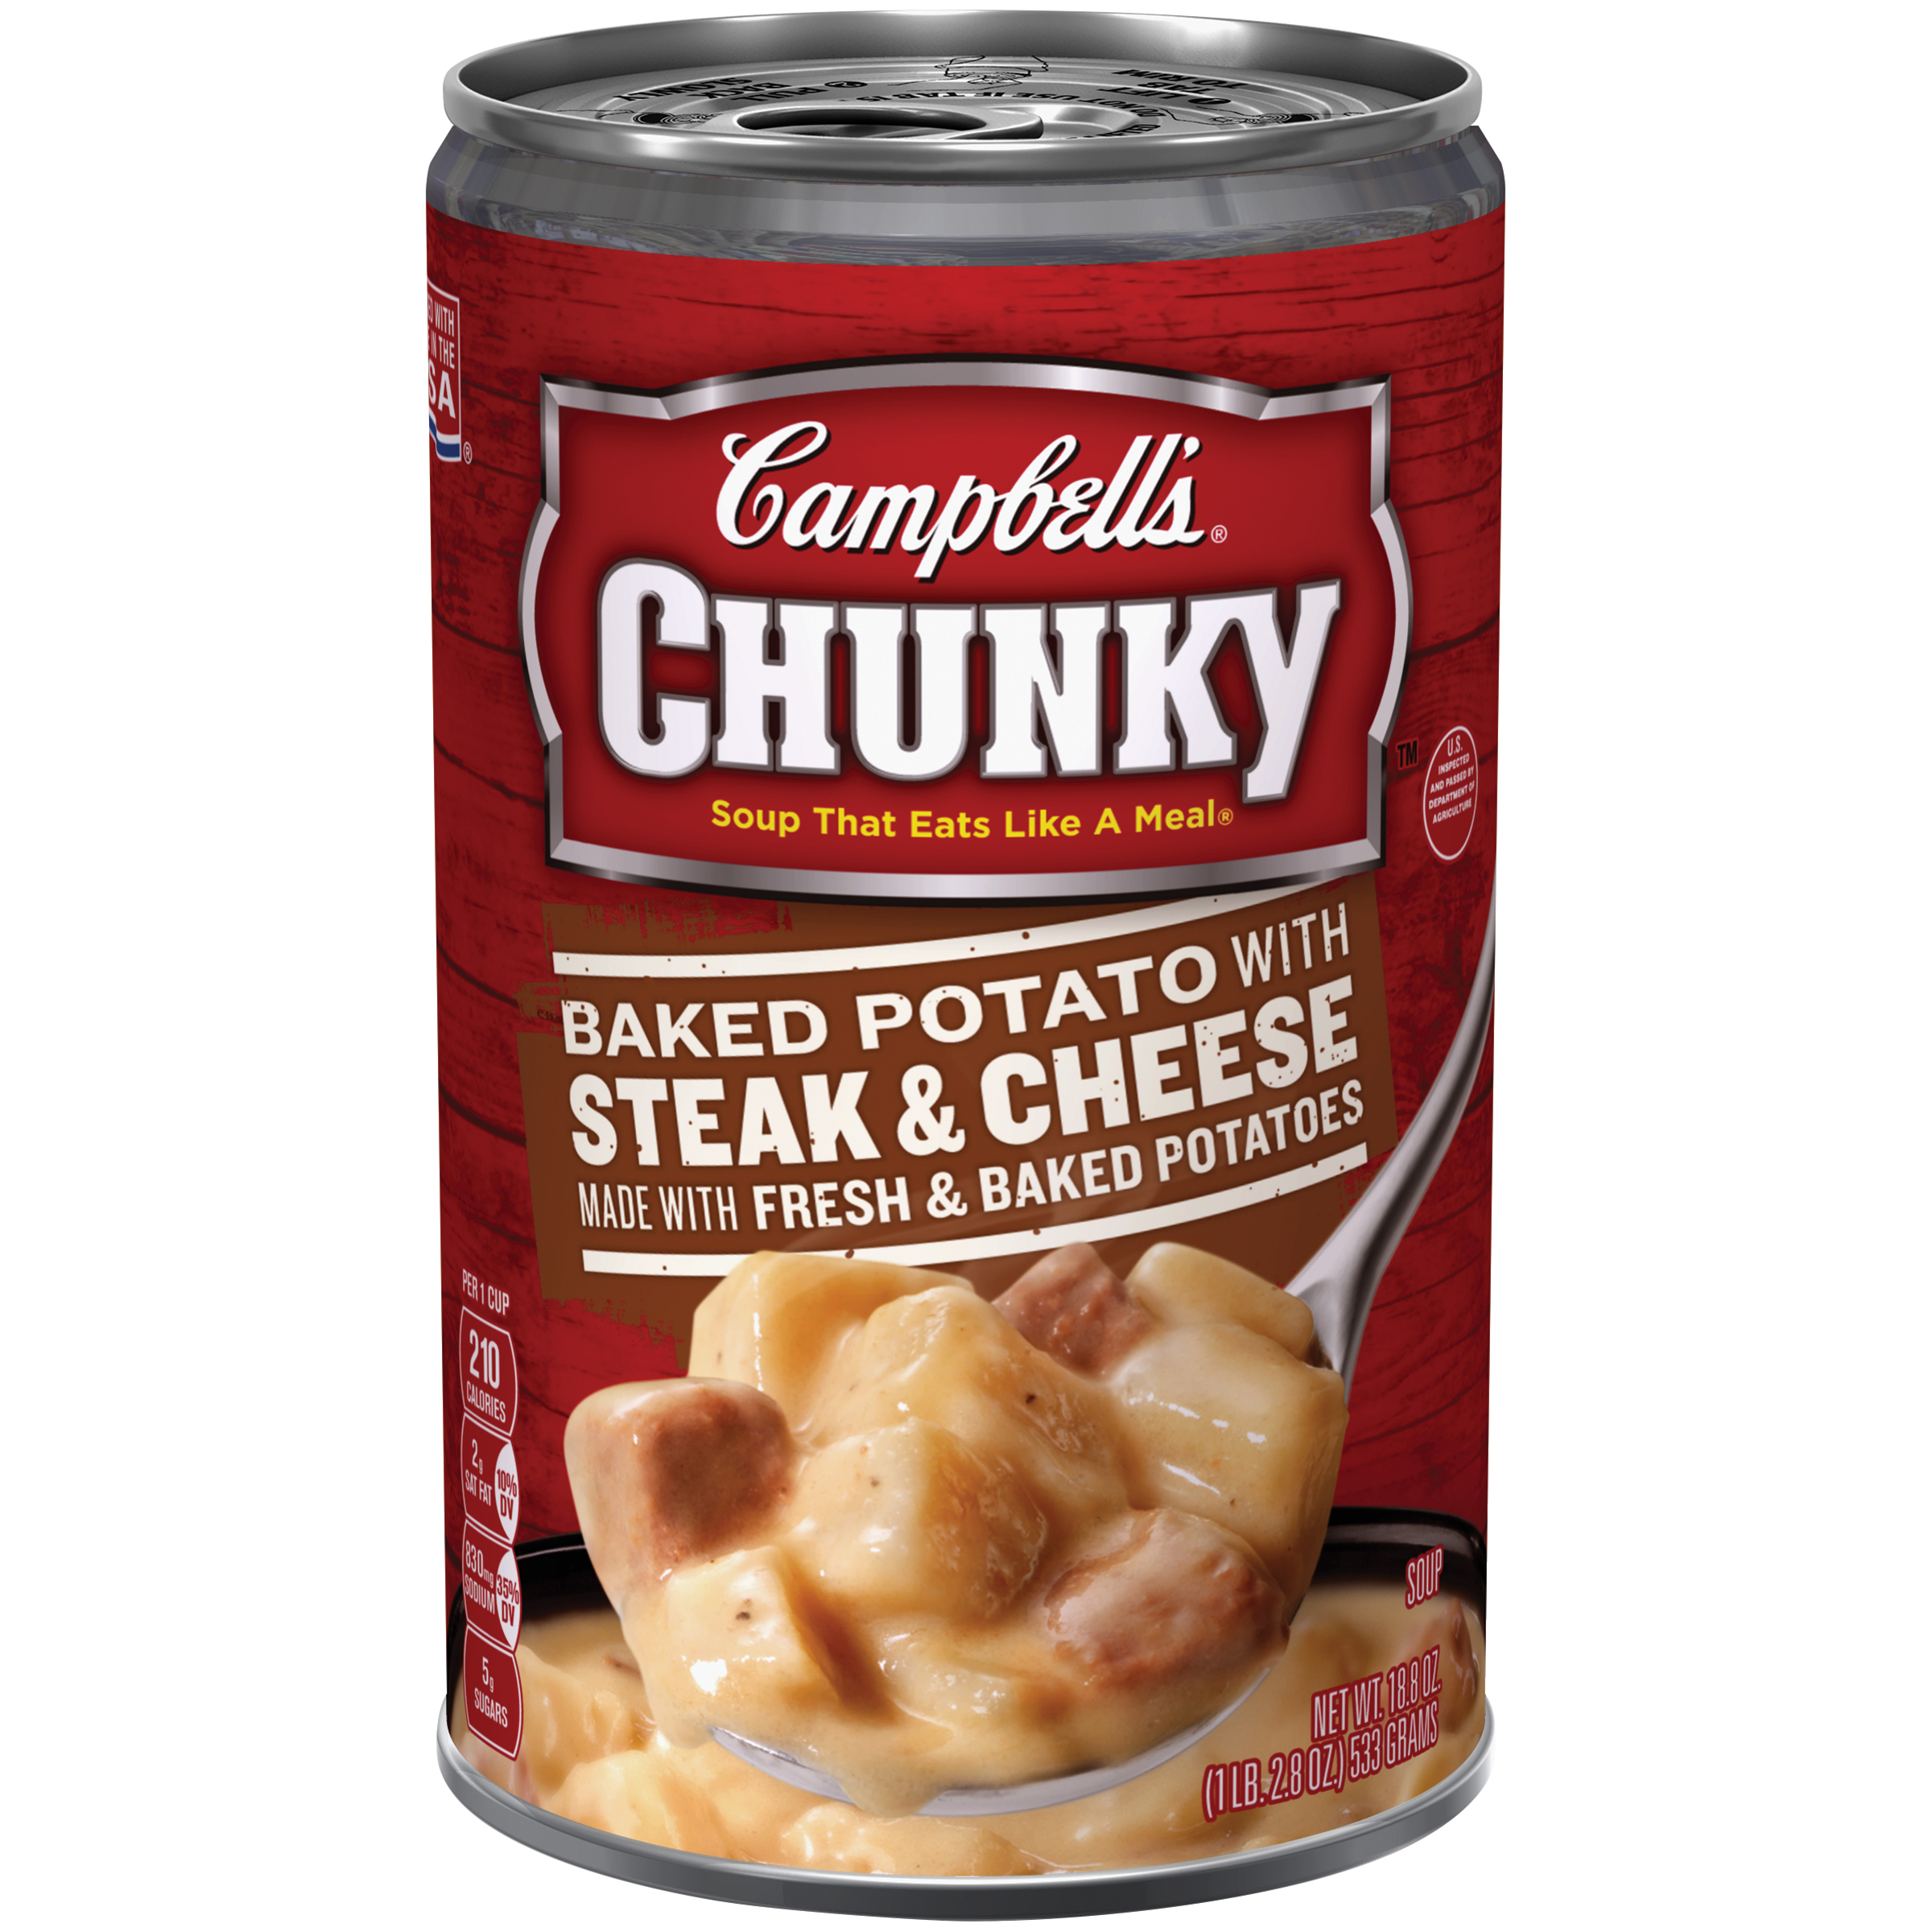 Campbell's Chunky Baked Potato with Steak & Cheese Soup 18.8oz